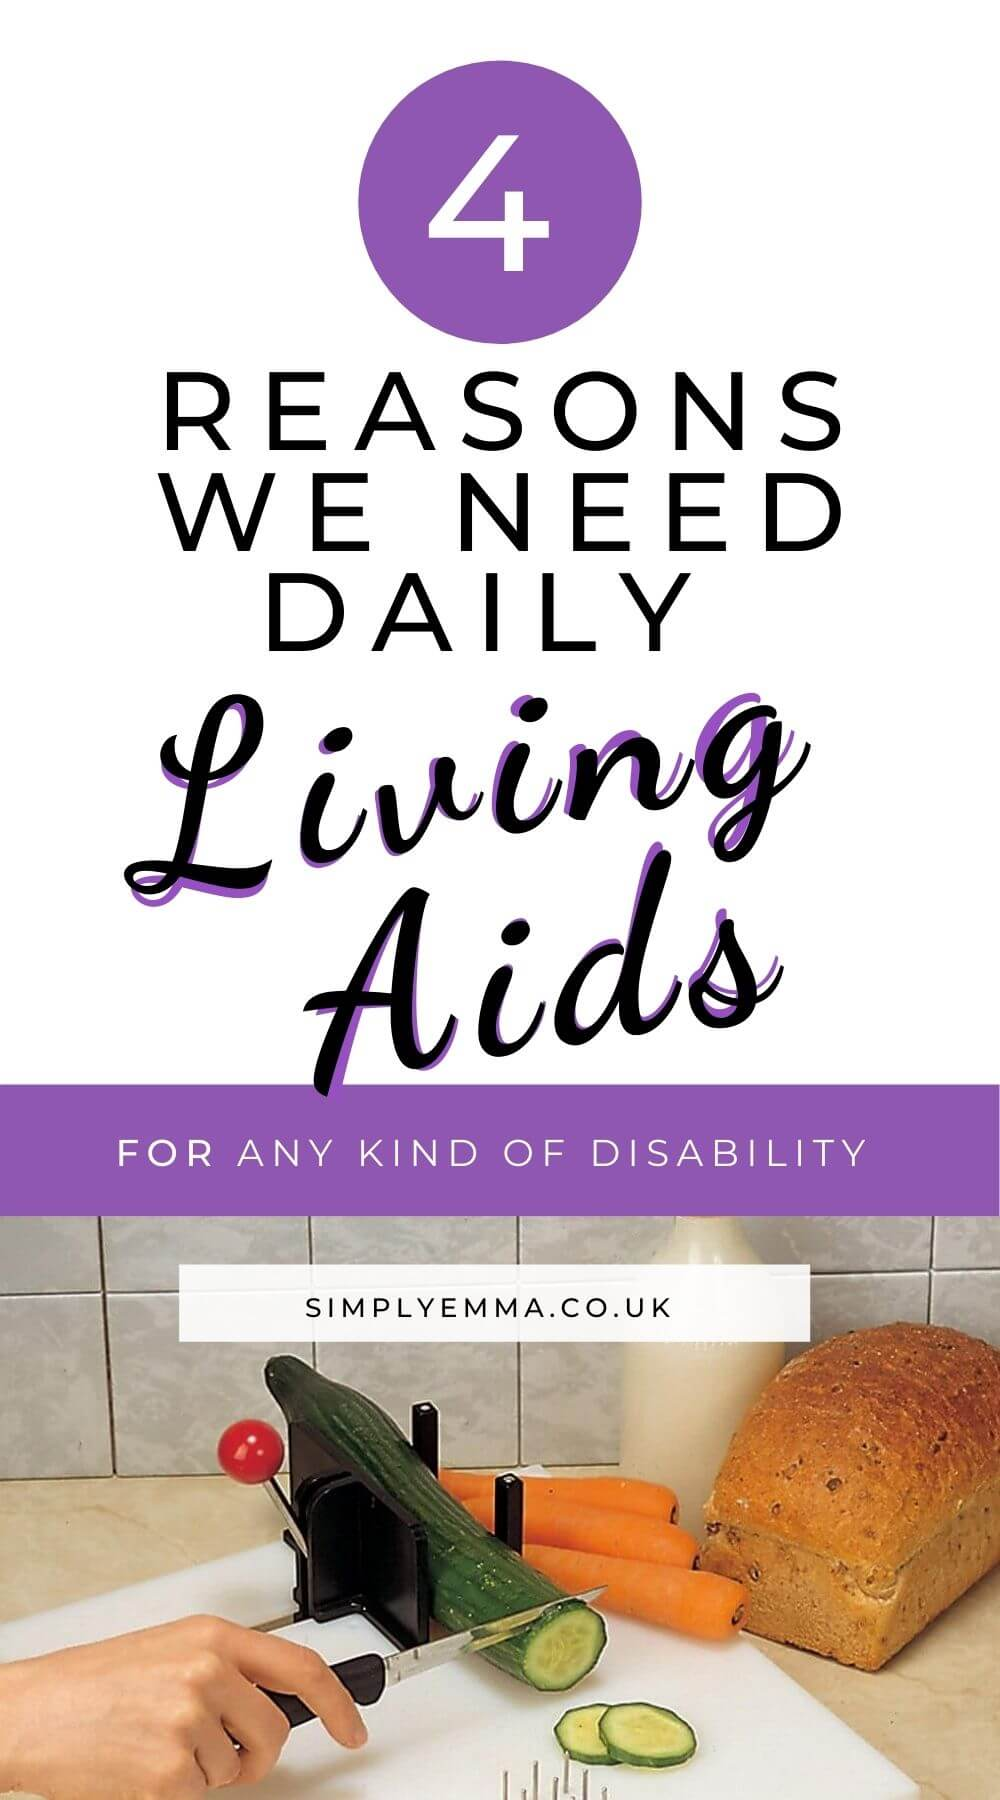 """""""4 Reasons We Need Daily Living Aids for any kind of disability"""" with a image of  A person's hand holding a knife and cutting vegetables on the Swedish Fix It Food Preparation Board."""